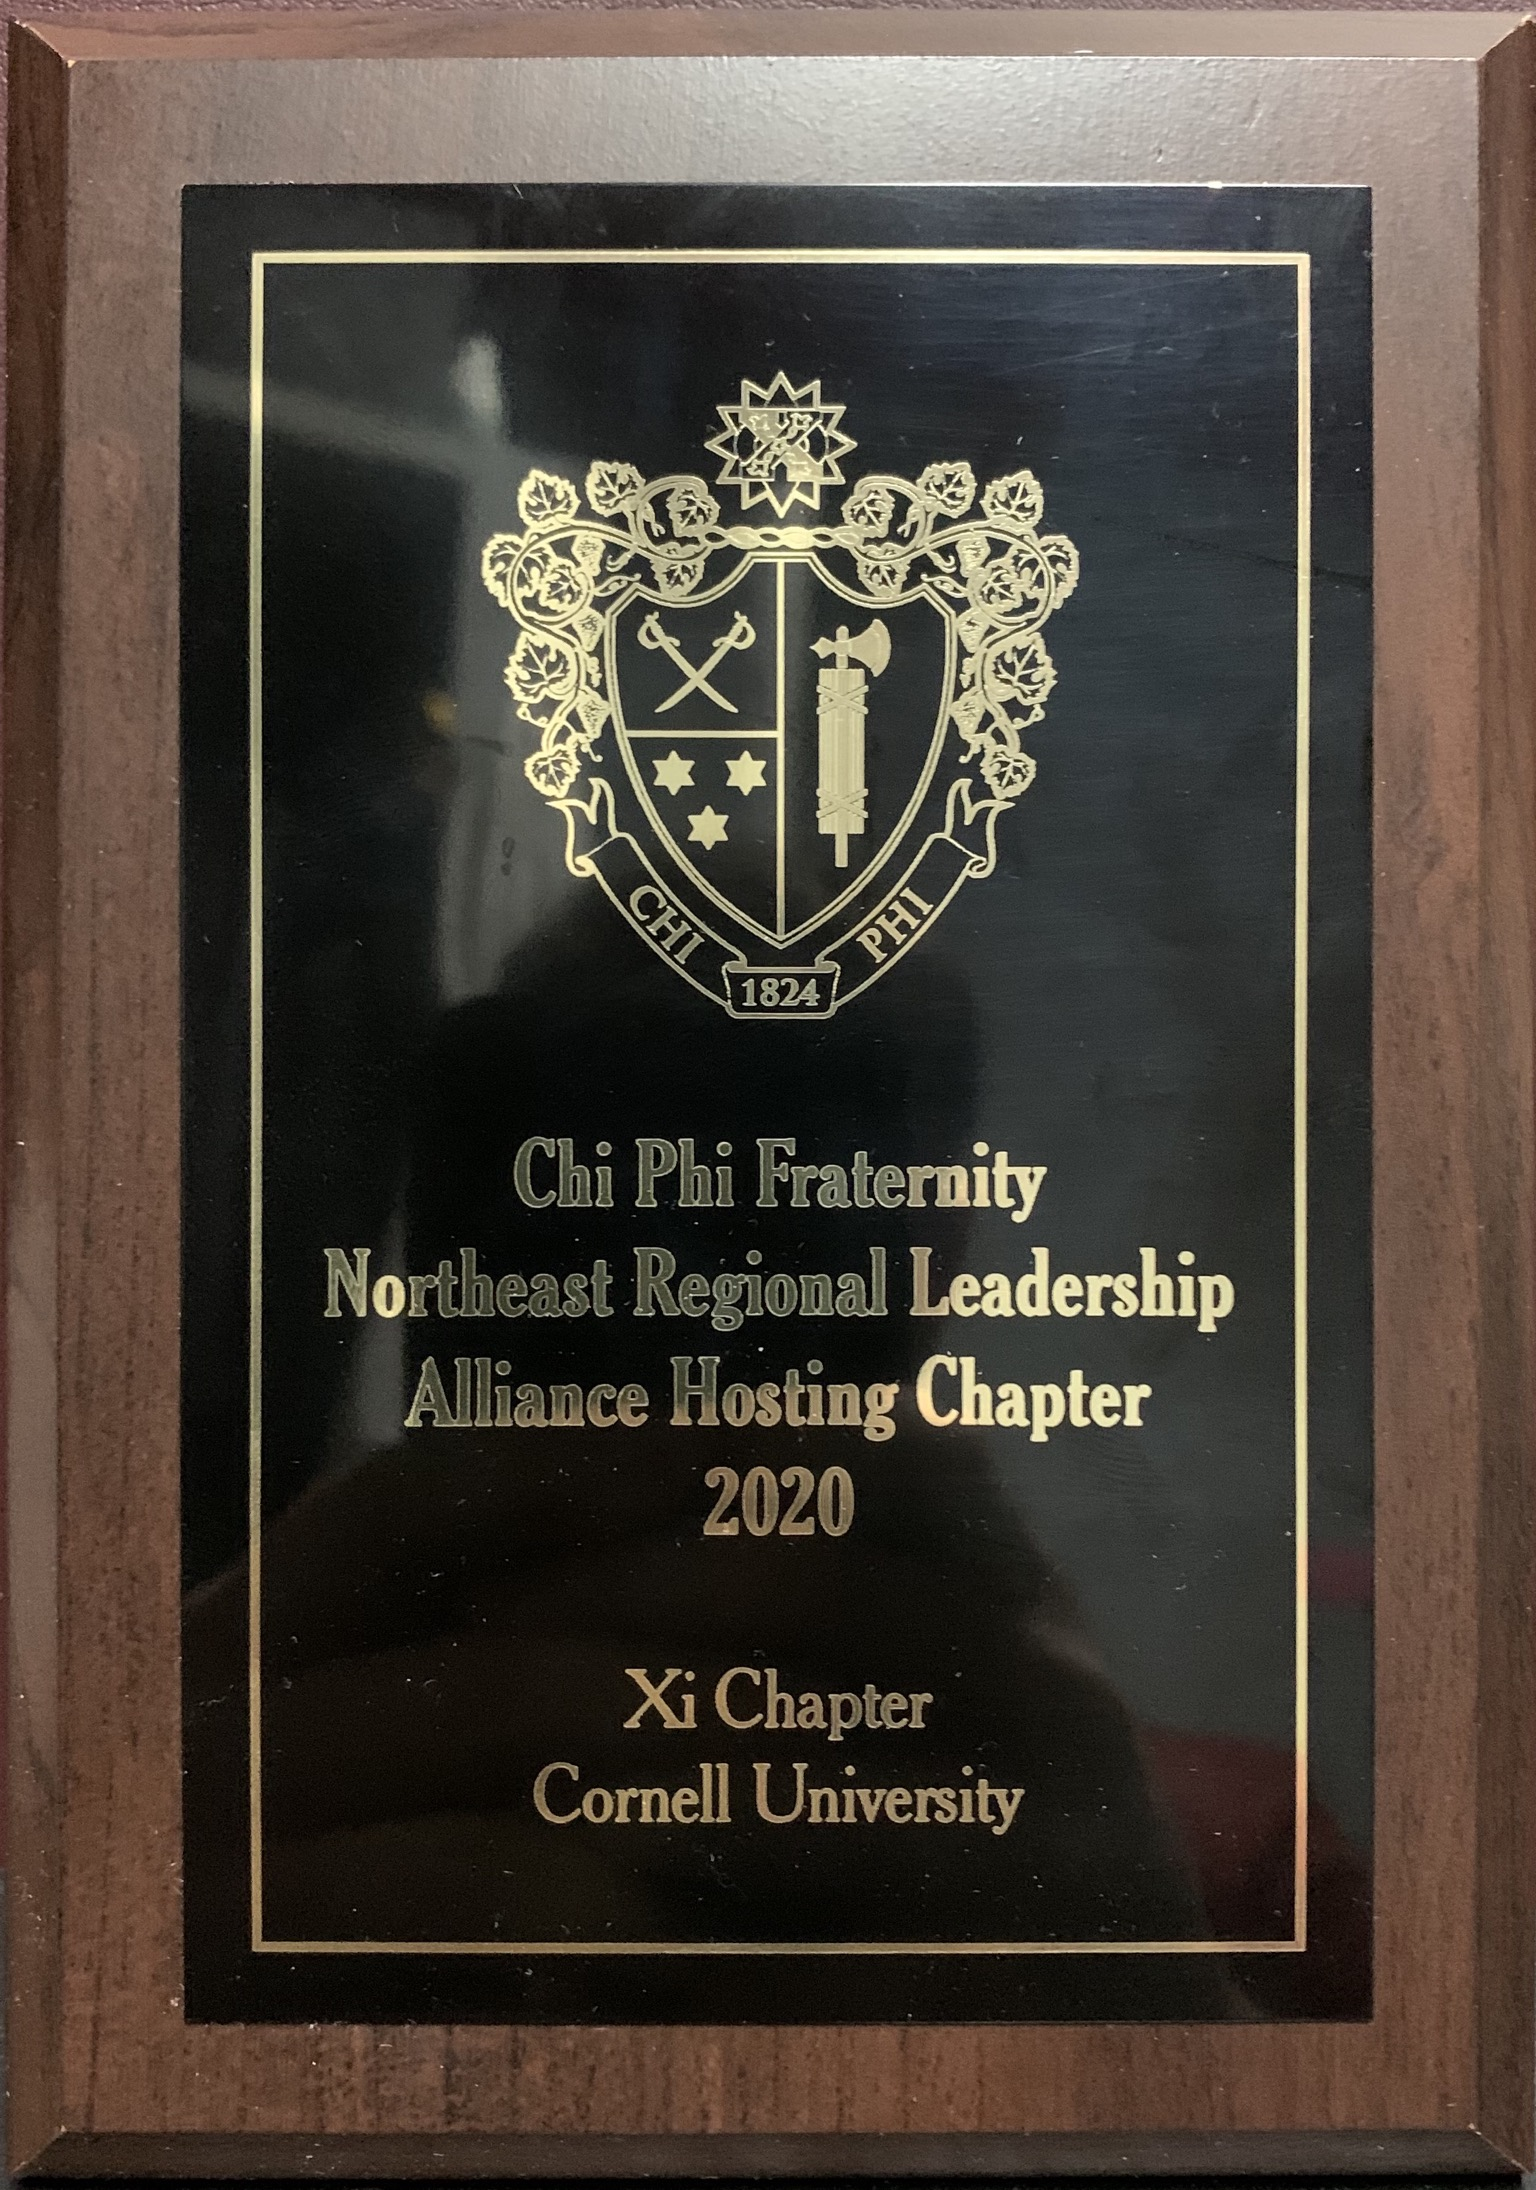 Chi Phi Cornell hosted the National Regional Leadership Alliance (RLA). The weekend went very well. The active brothers received additional presentations from the ex Grand alpha as well as a risk presentation from the national Associate Director of Risk Management. The Xi Chapter received a plaque for hosting.